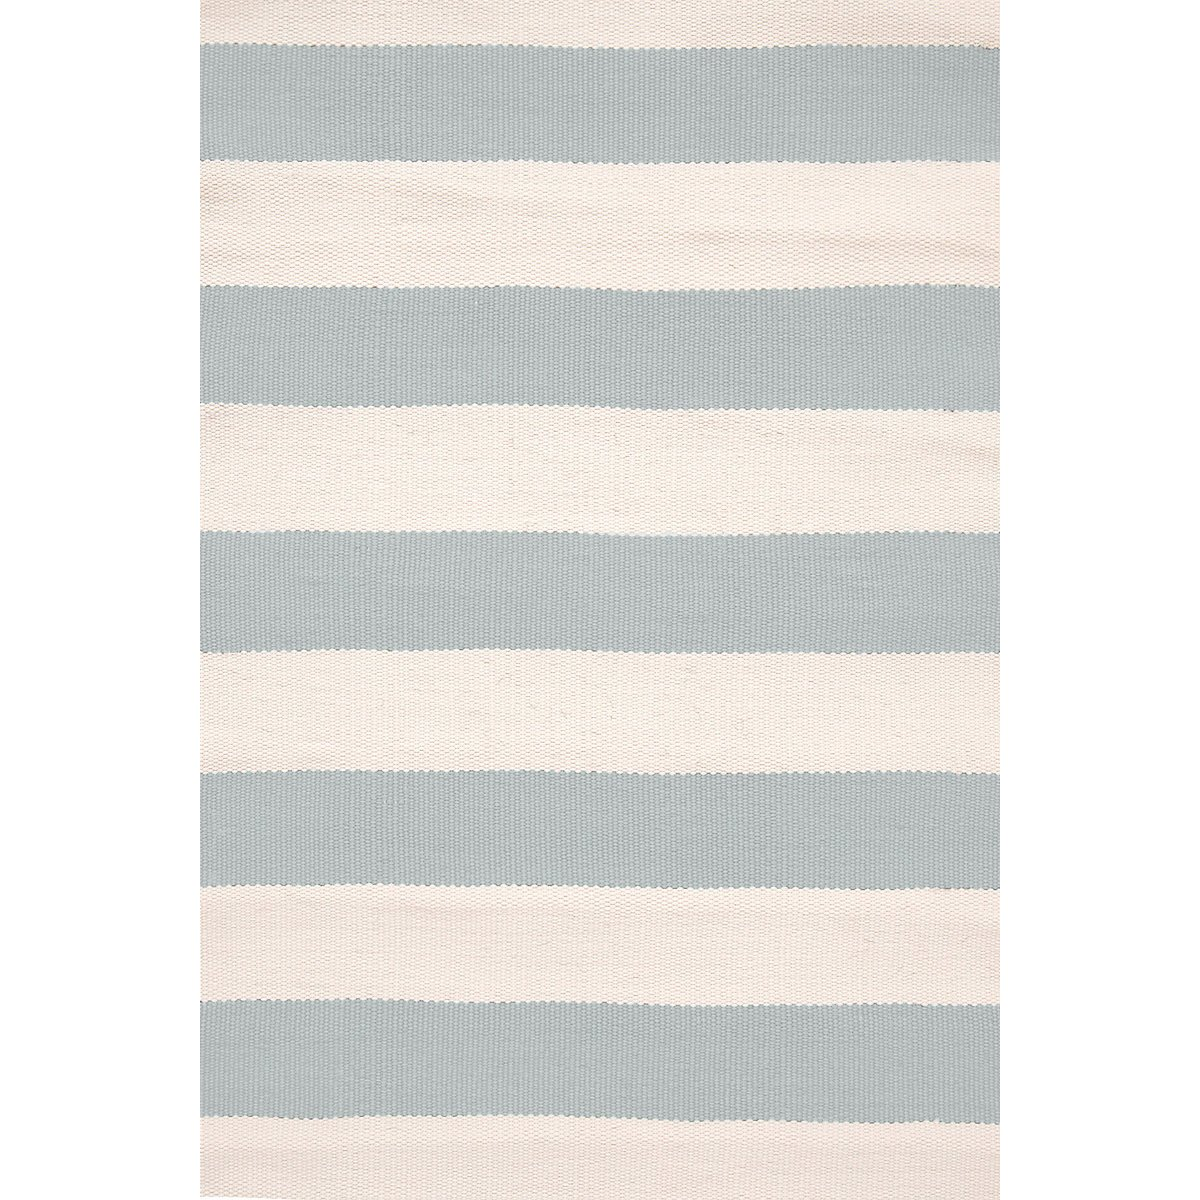 Catamaran Stripe Light Blue & Ivory Indoor/Outdoor Rug design by Dash & Albert